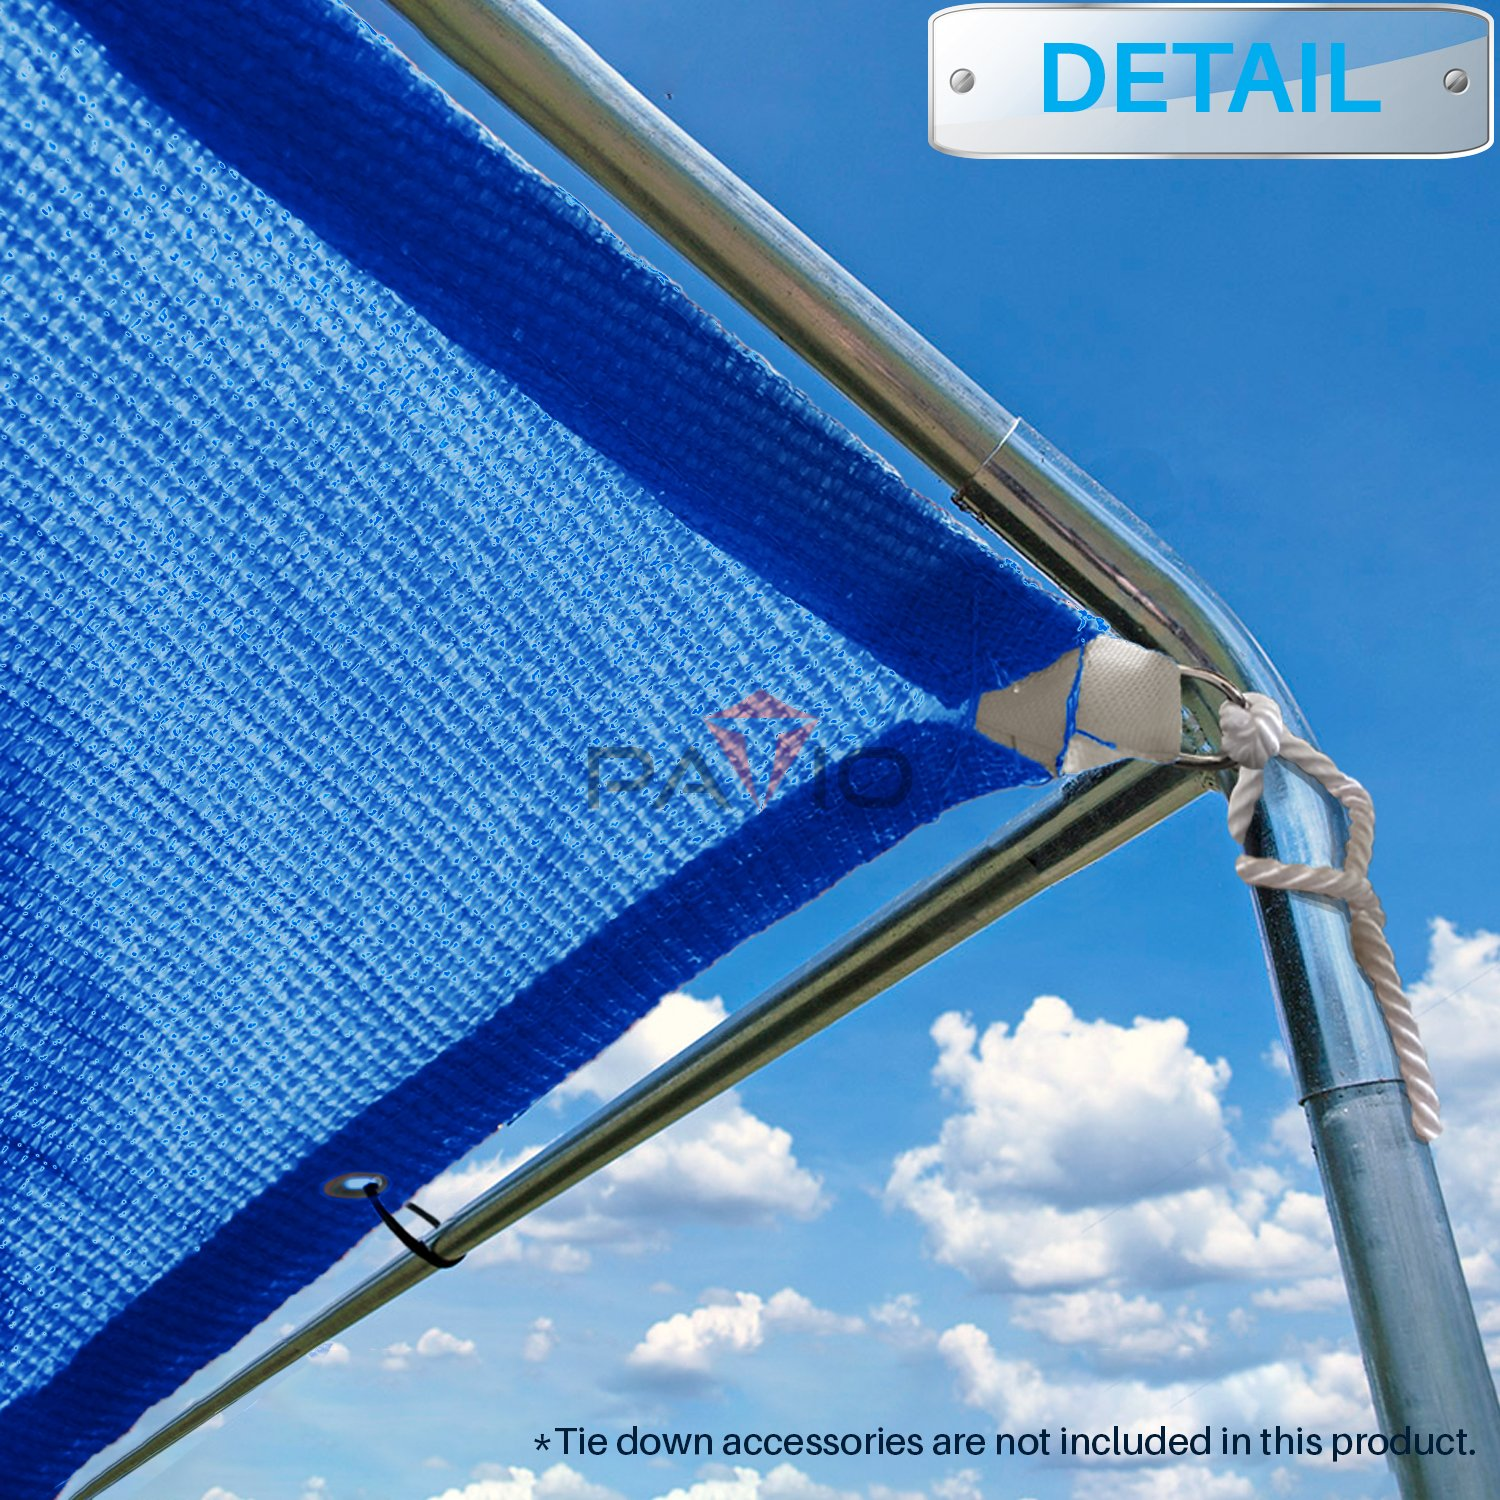 Patio Paradise 6 x 6 Straight Edge Sun Shade Sail, Blue Rectangle Outdoor Shade Cloth Pergola Cover UV Block Fabric – Custom 3 Year Warrenty